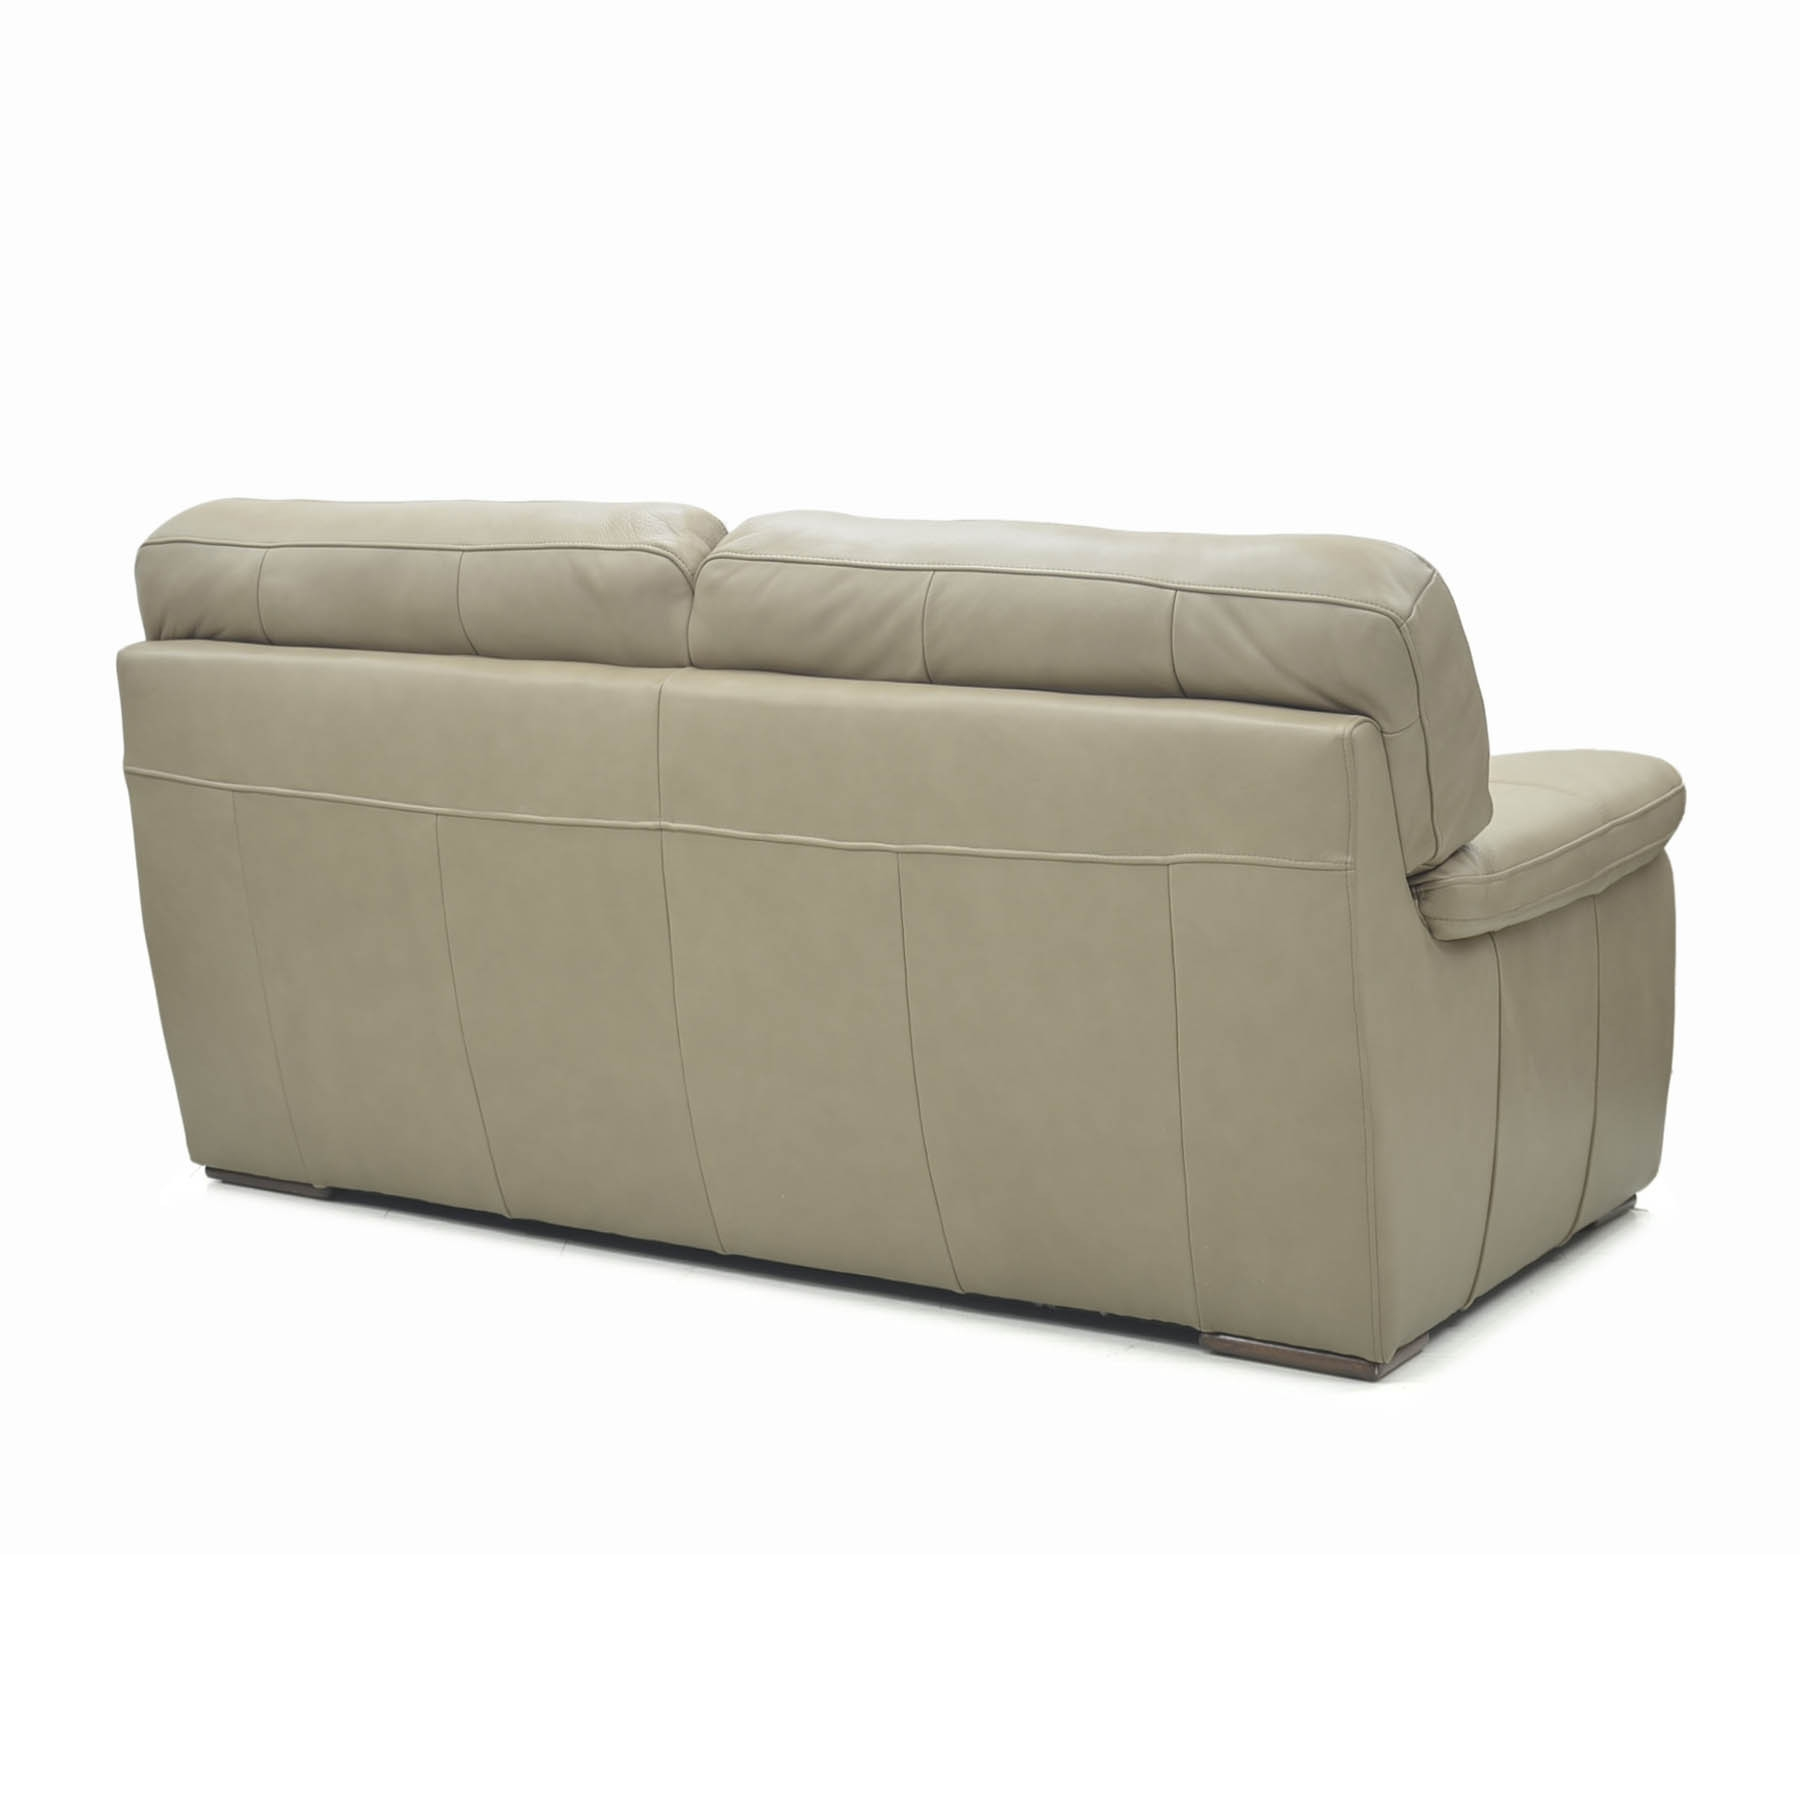 Florence Medium 2 Seater Sofa Intended For Florence Medium Sofas (Image 10 of 15)